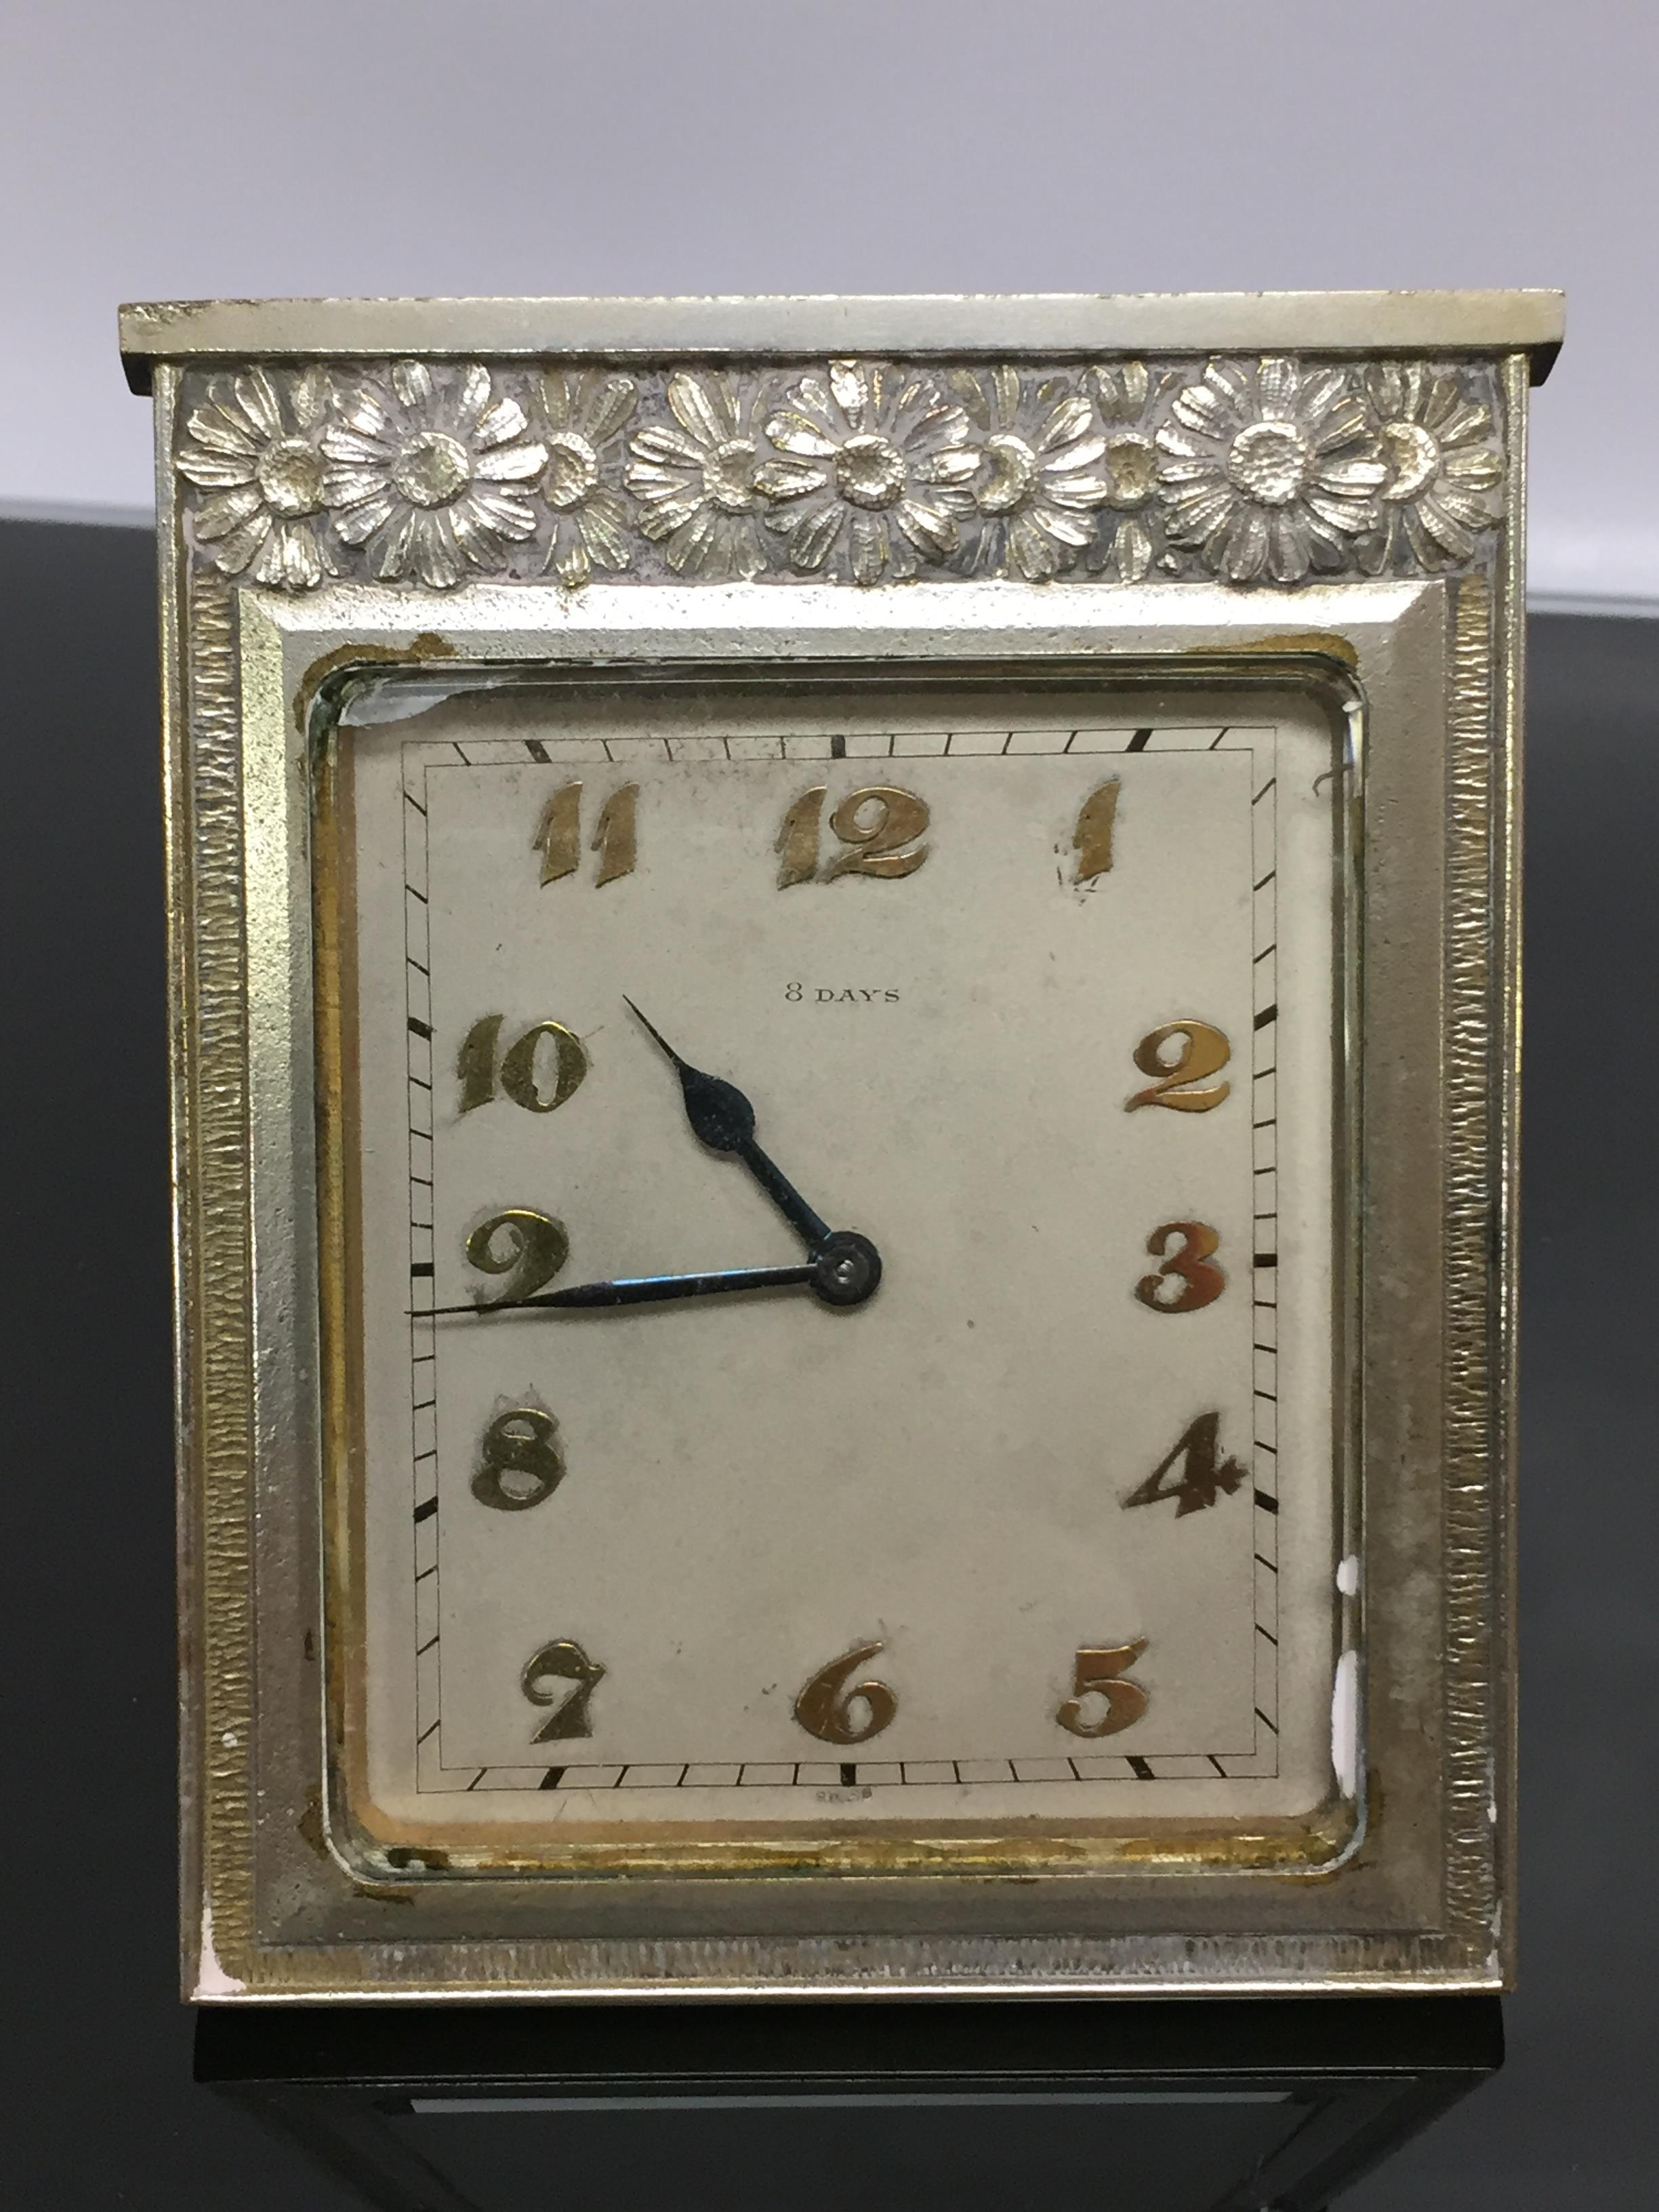 Lot 92 - A SWISS WHITE METAL SQUARE DESK CLOCK IN ART DECO STYLE, FLORAL DECORATION TO TOP BORDER.